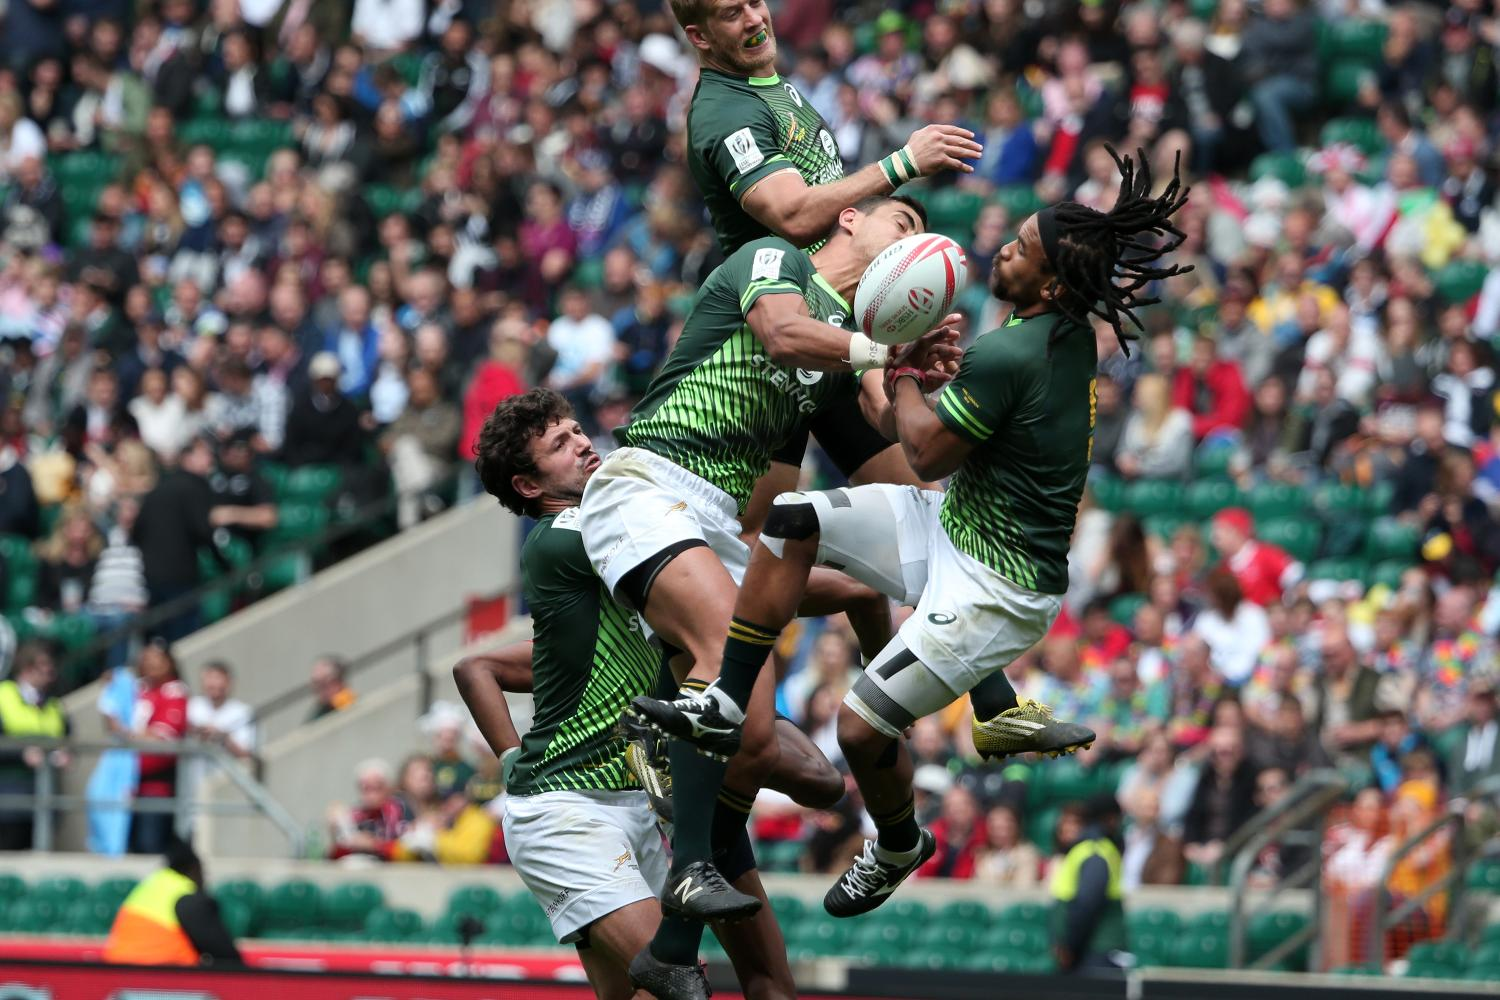 South Africa at the London Sevens